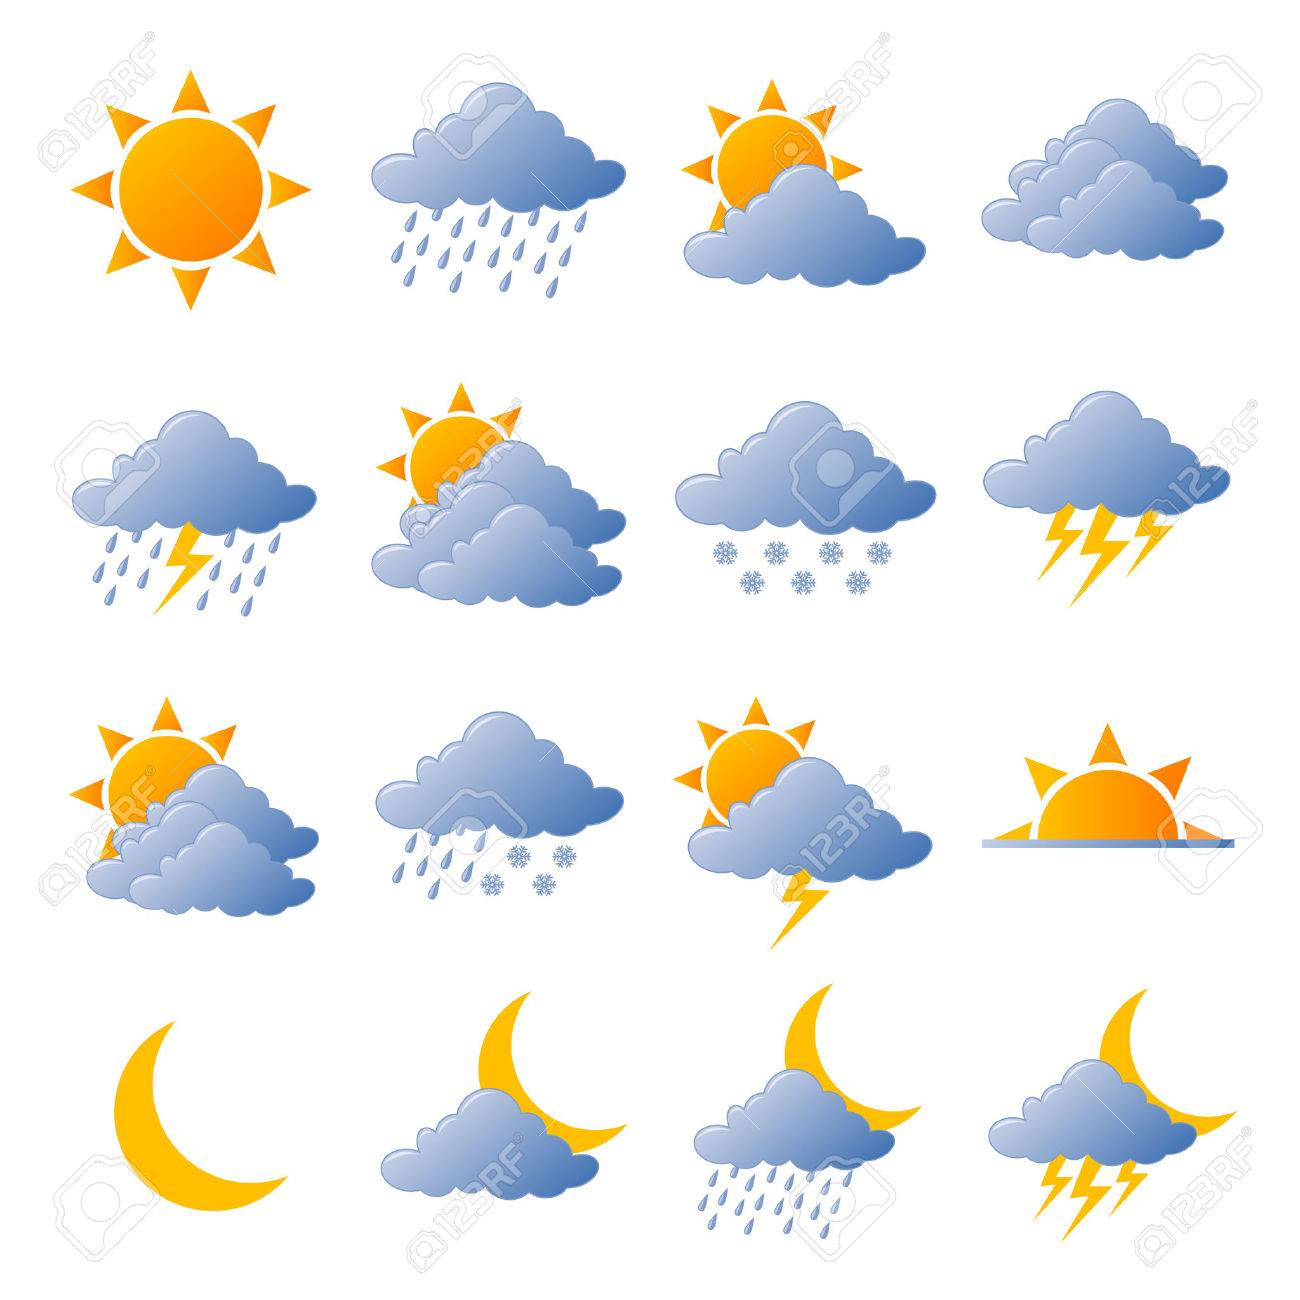 Weather icons fully editable vector illustration Stock Vector - 3063593